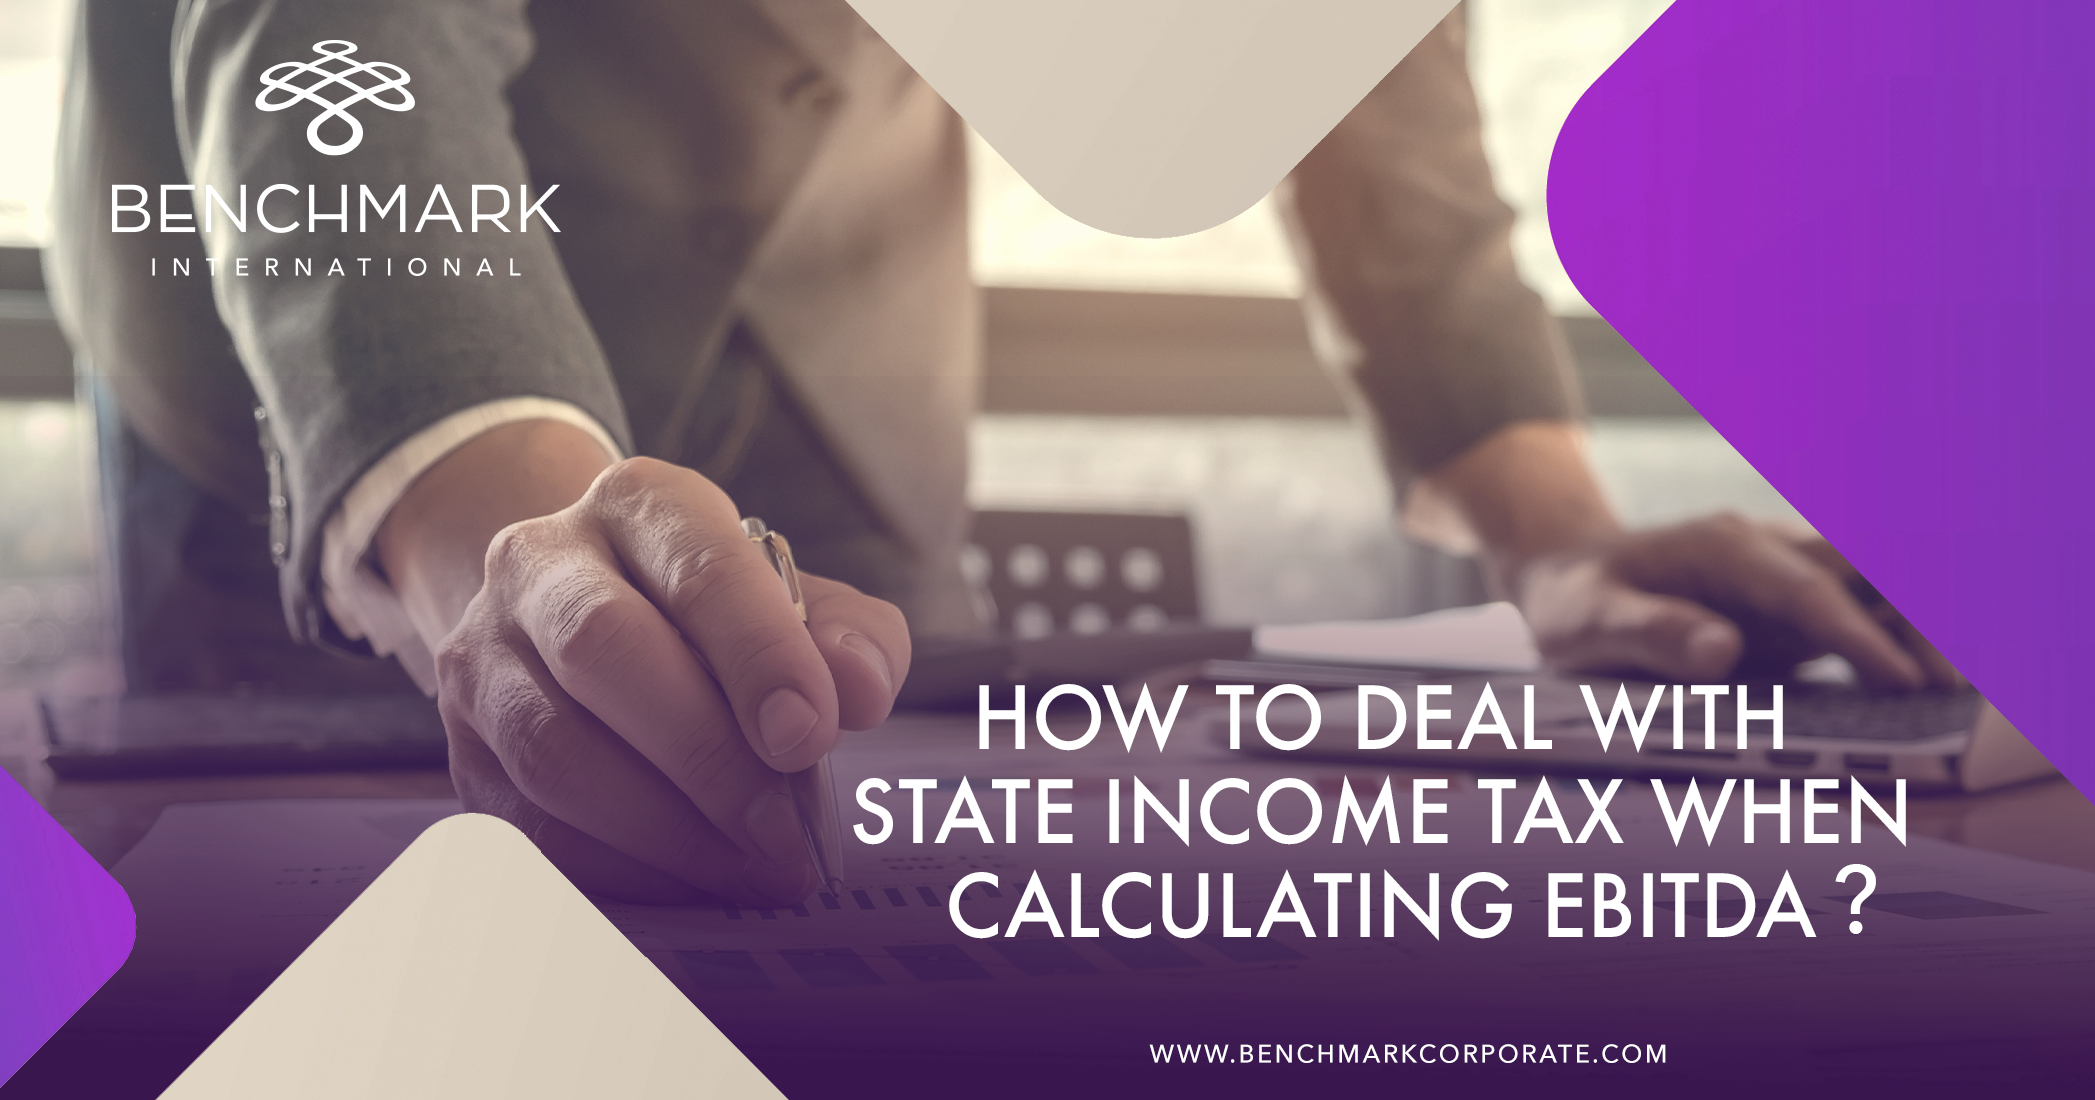 How to Deal with State Income Tax when Calculating EBITDA